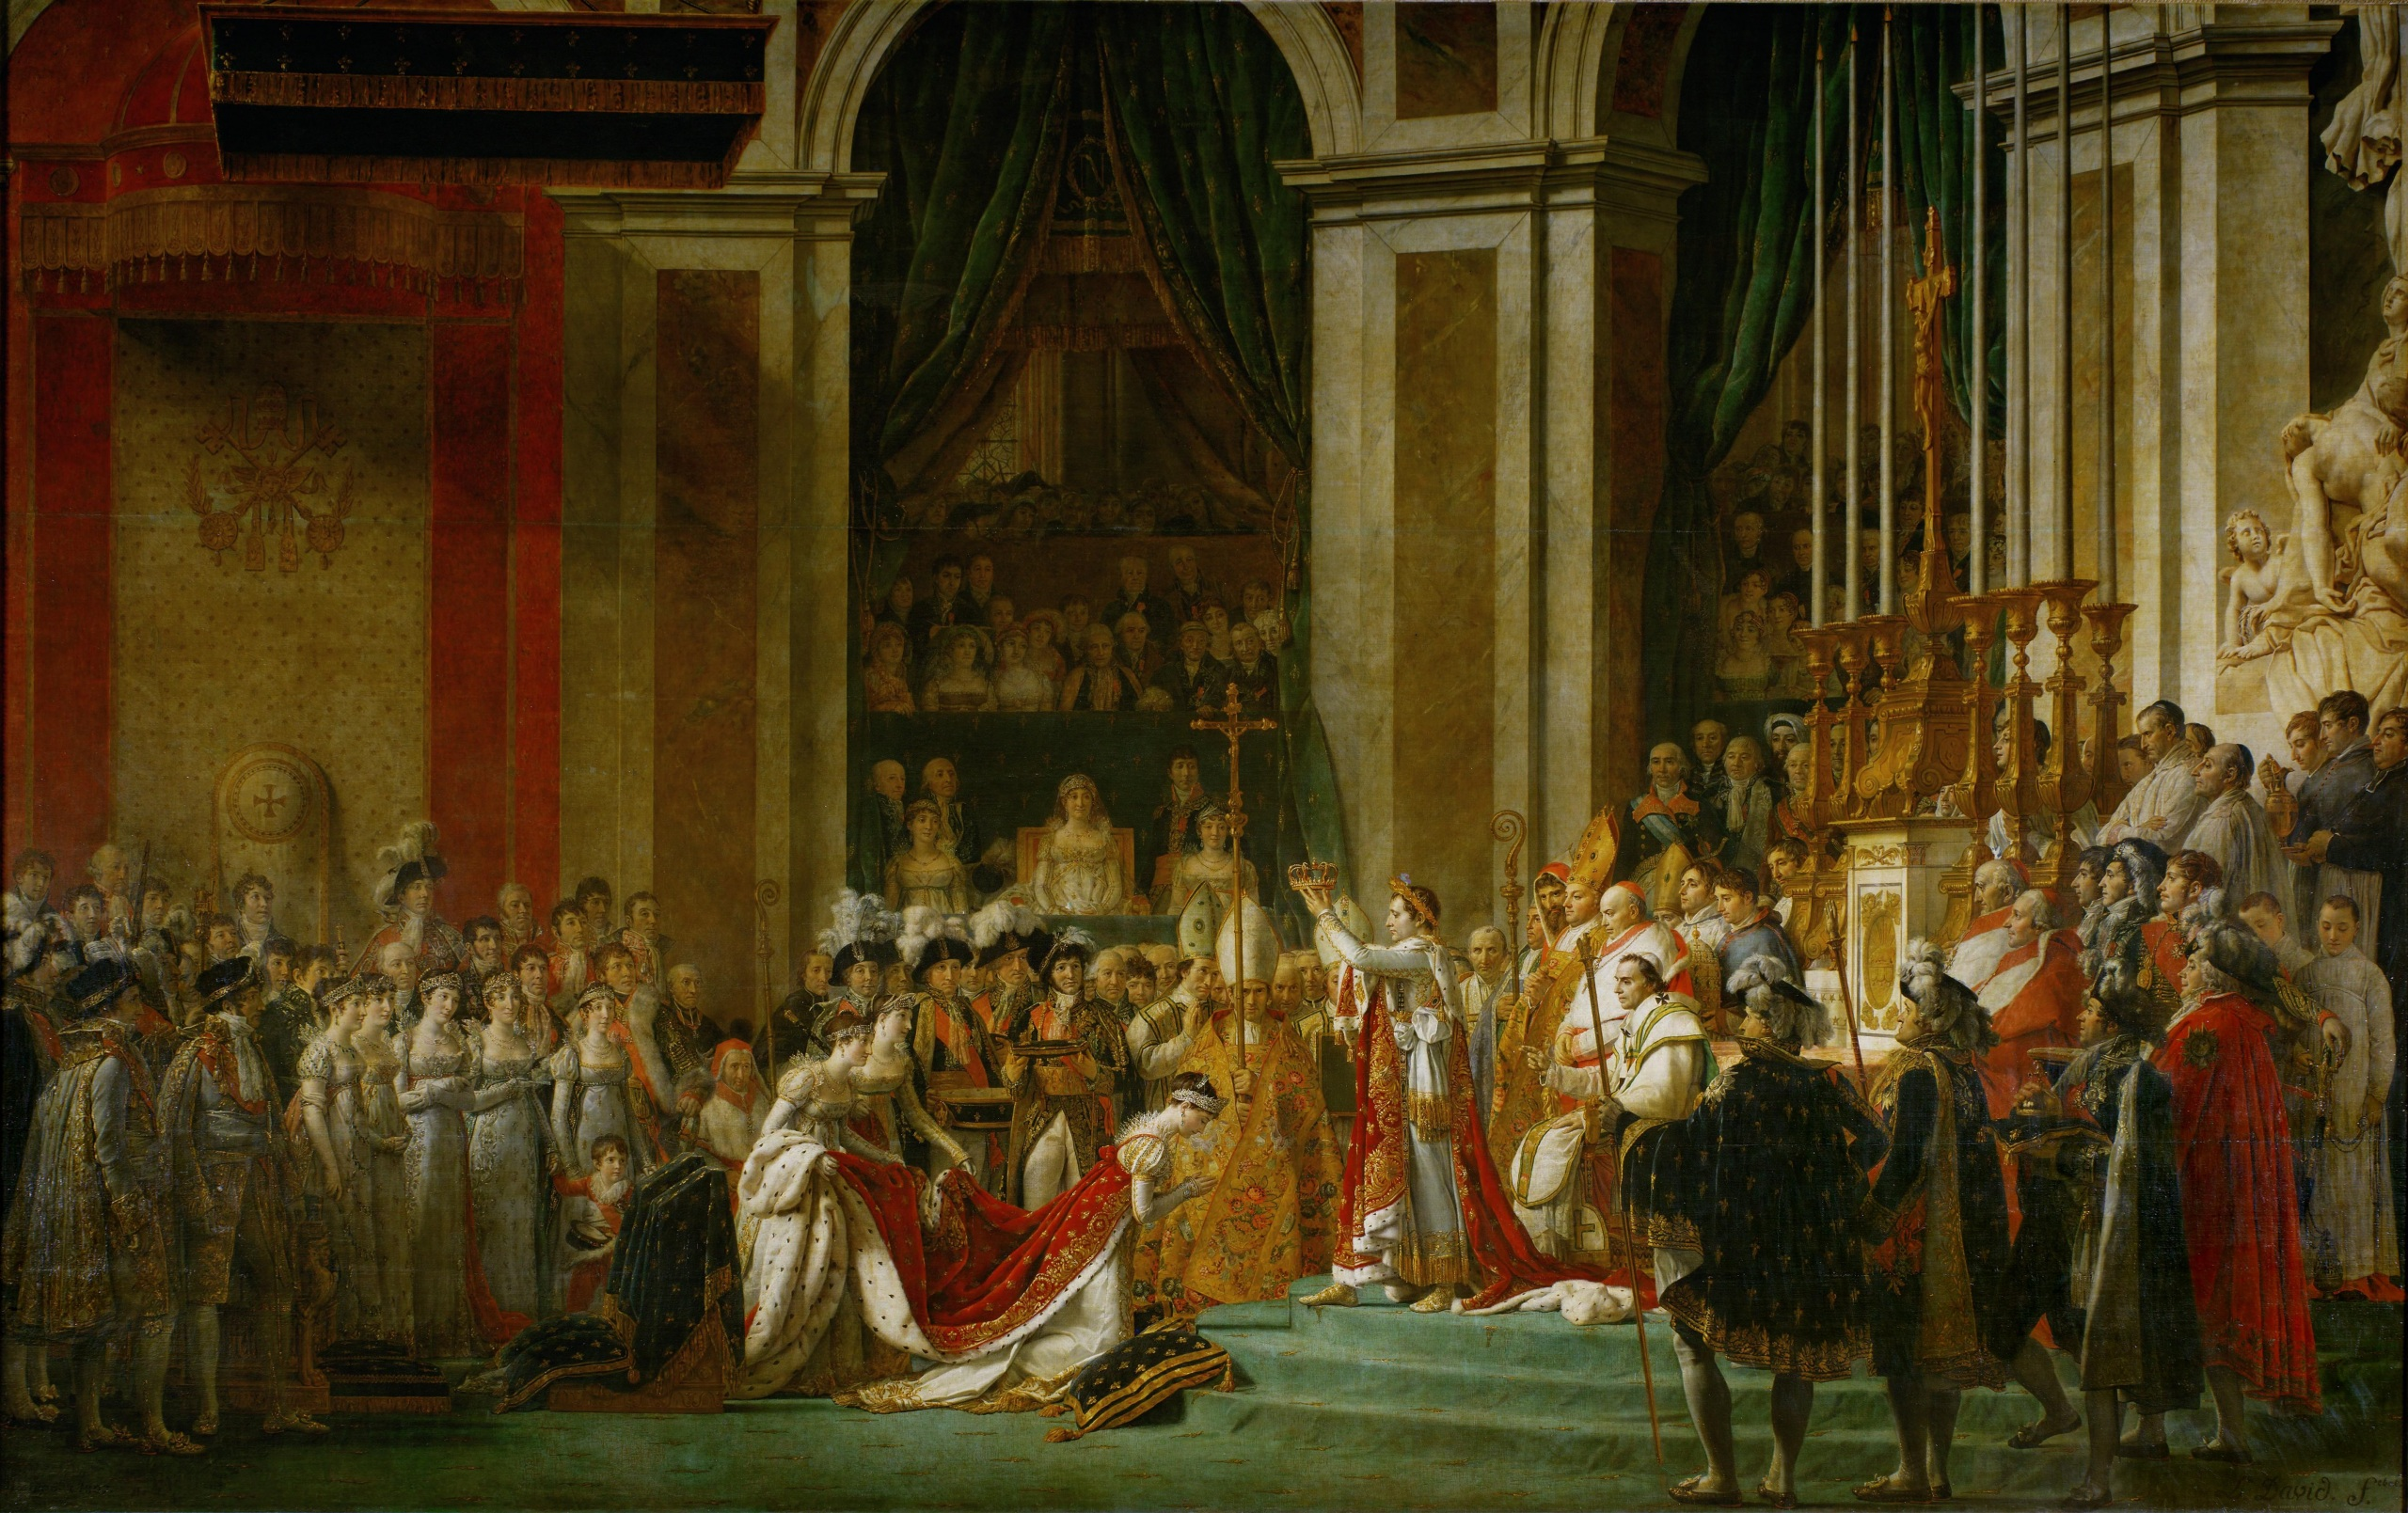 an analysis of the impact of napoleon bonaparte on france and the rest of europe The influences of napoleon bonaparte on europe and the world review the importance of napoleon on france rest of europe time to.